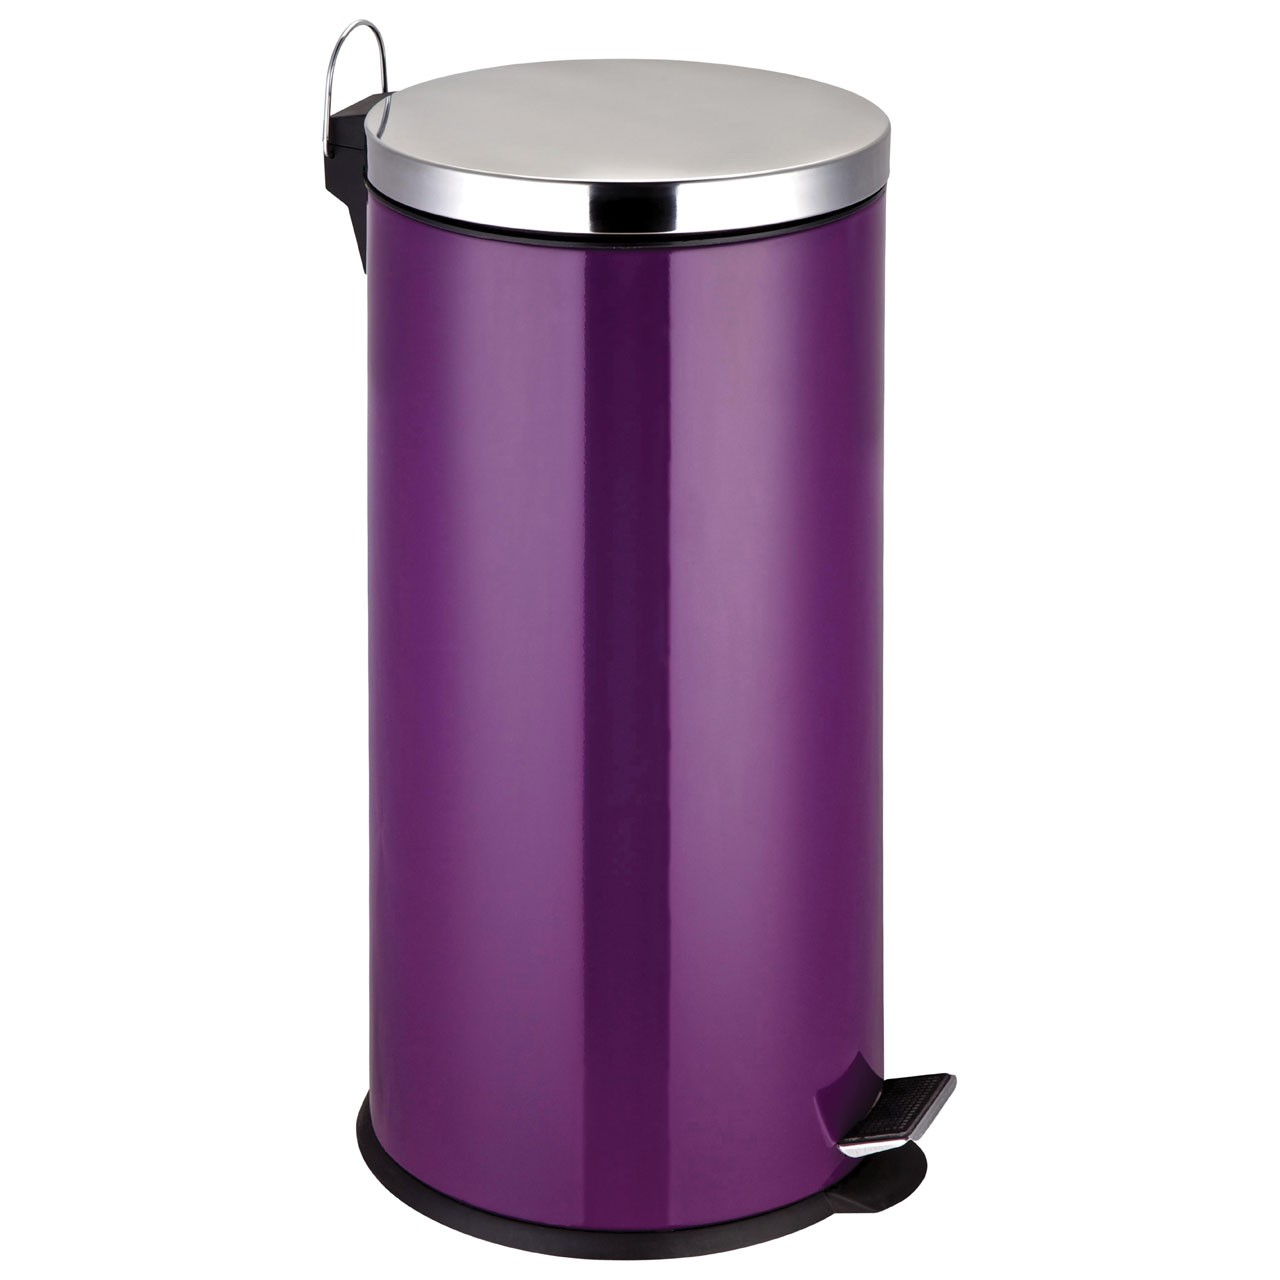 30 L Stainless Steel Pedal Bin, Purple